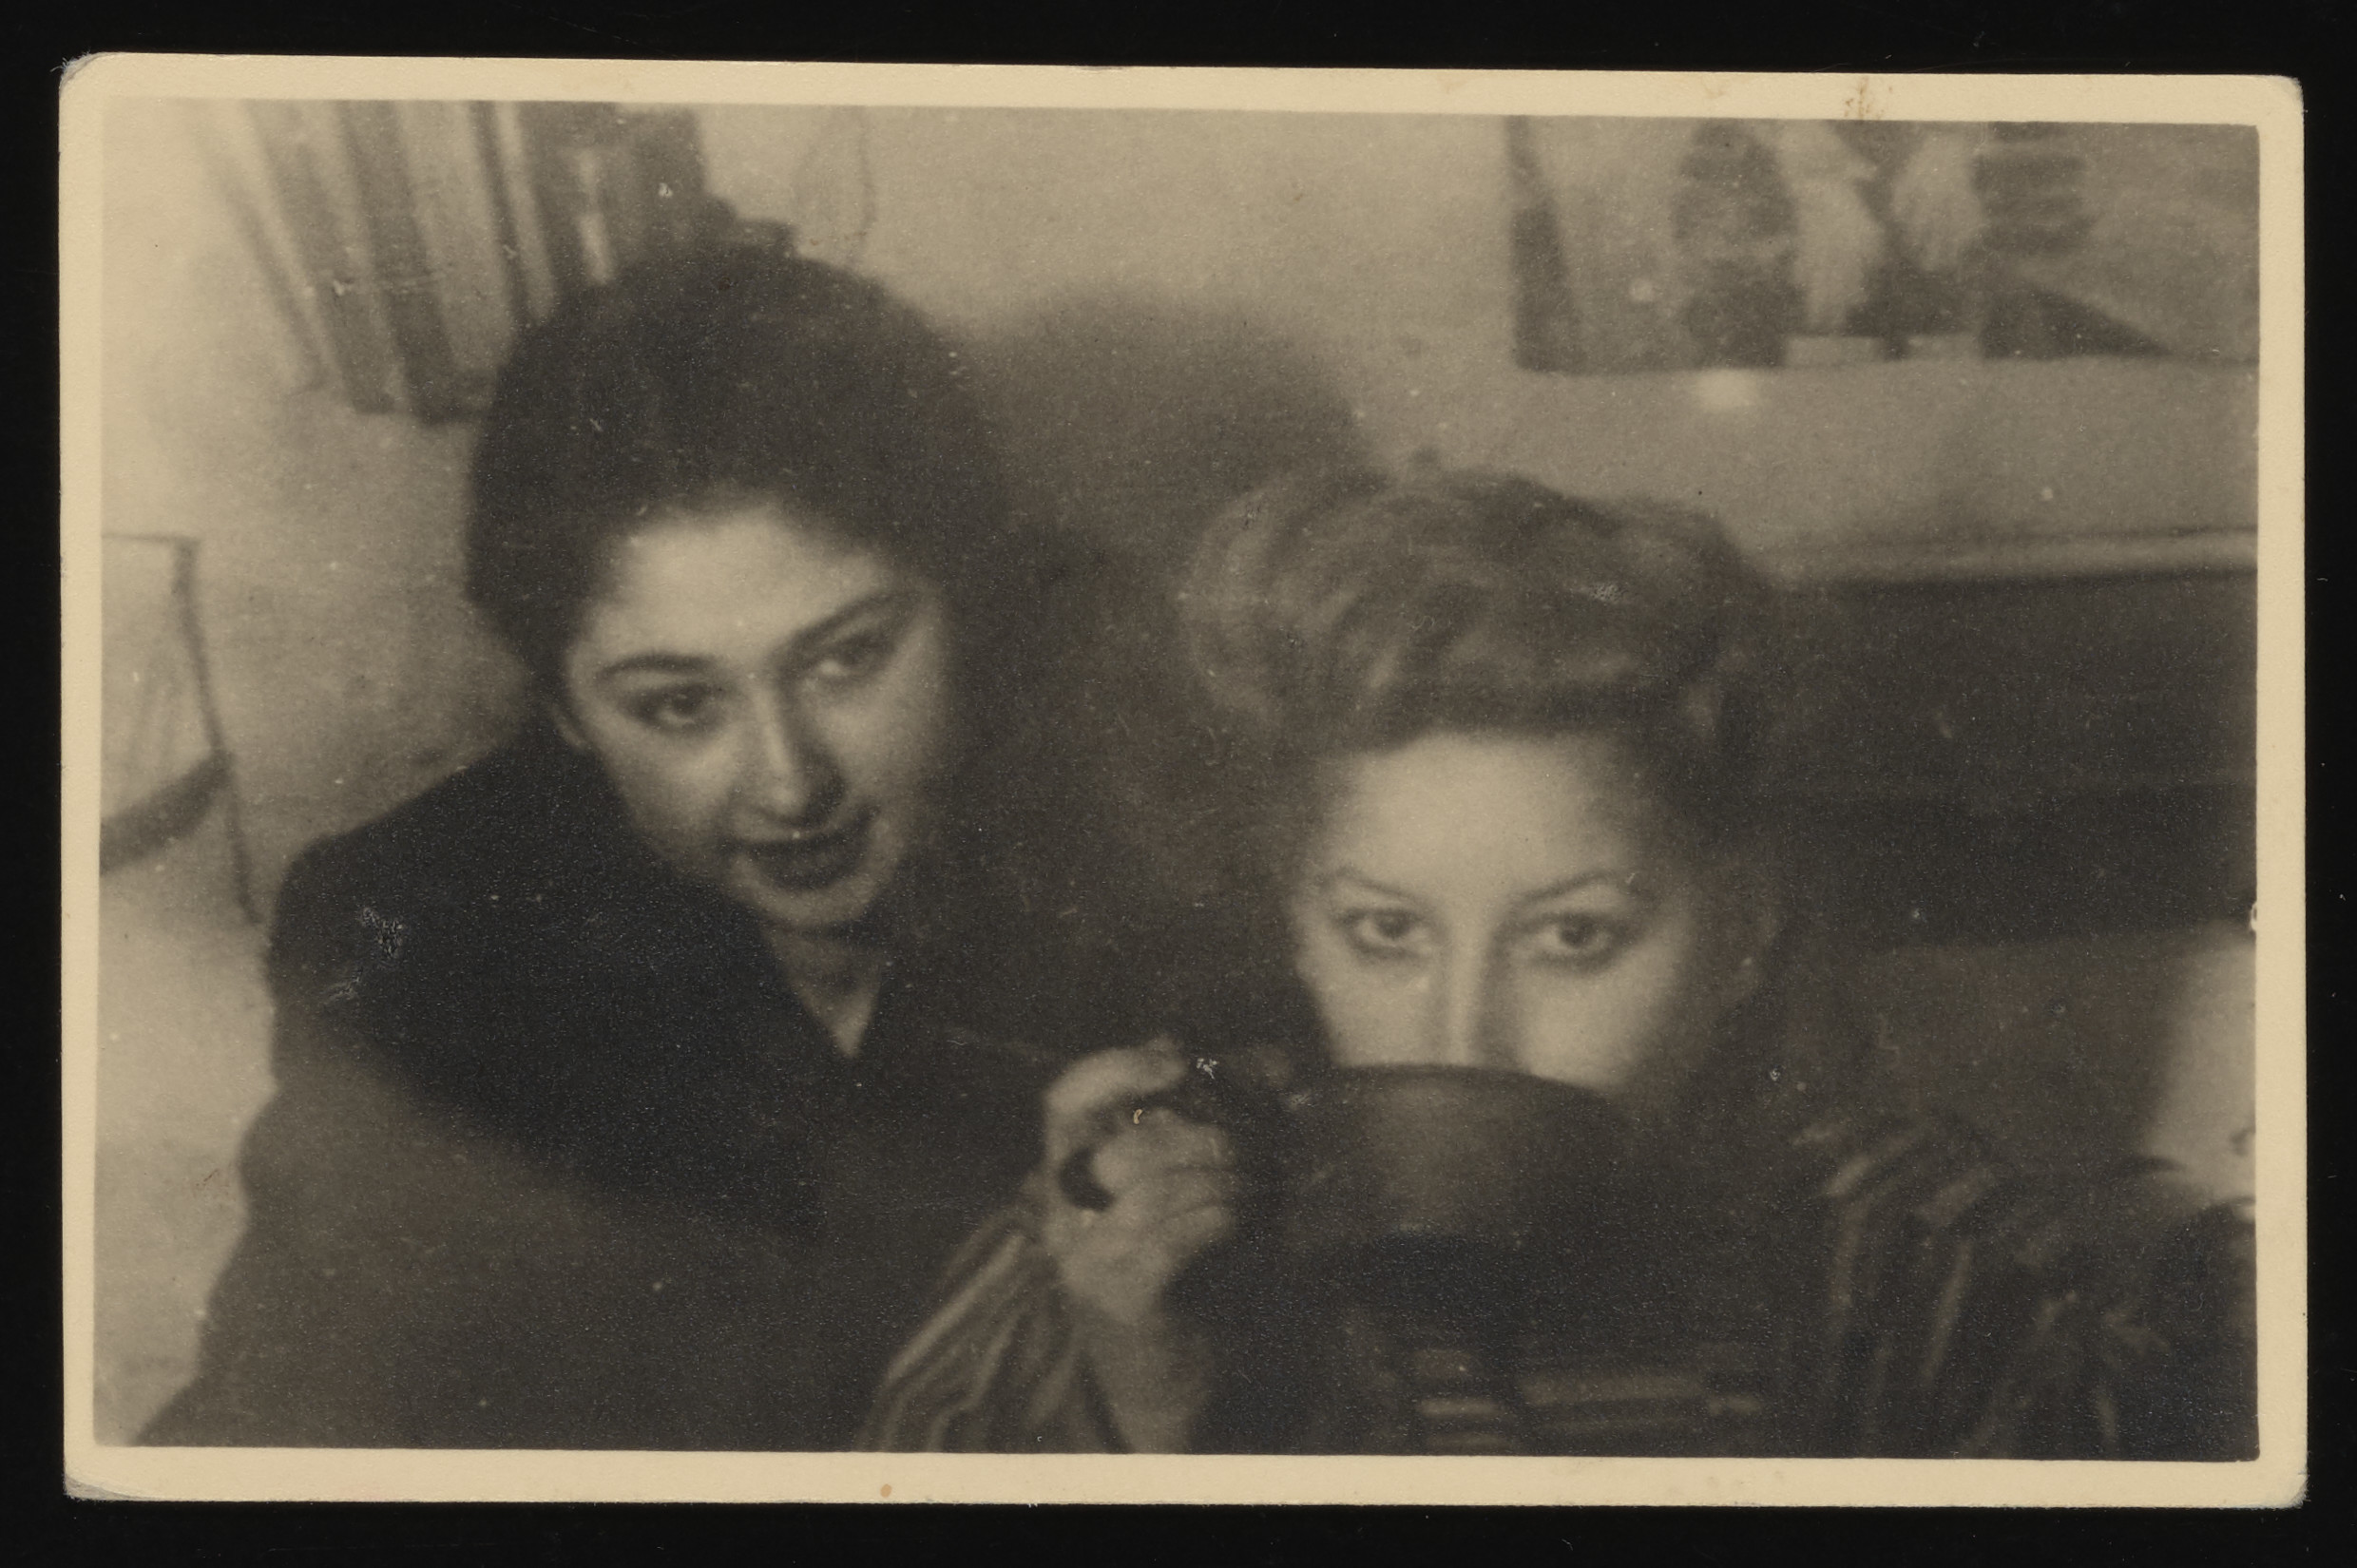 Close-up portrait of two women, one of whom is drinking from a large mug, in the Lodz ghetto.  Pictured are Helena Zemler (left) and Melania Fogelbaum (right).